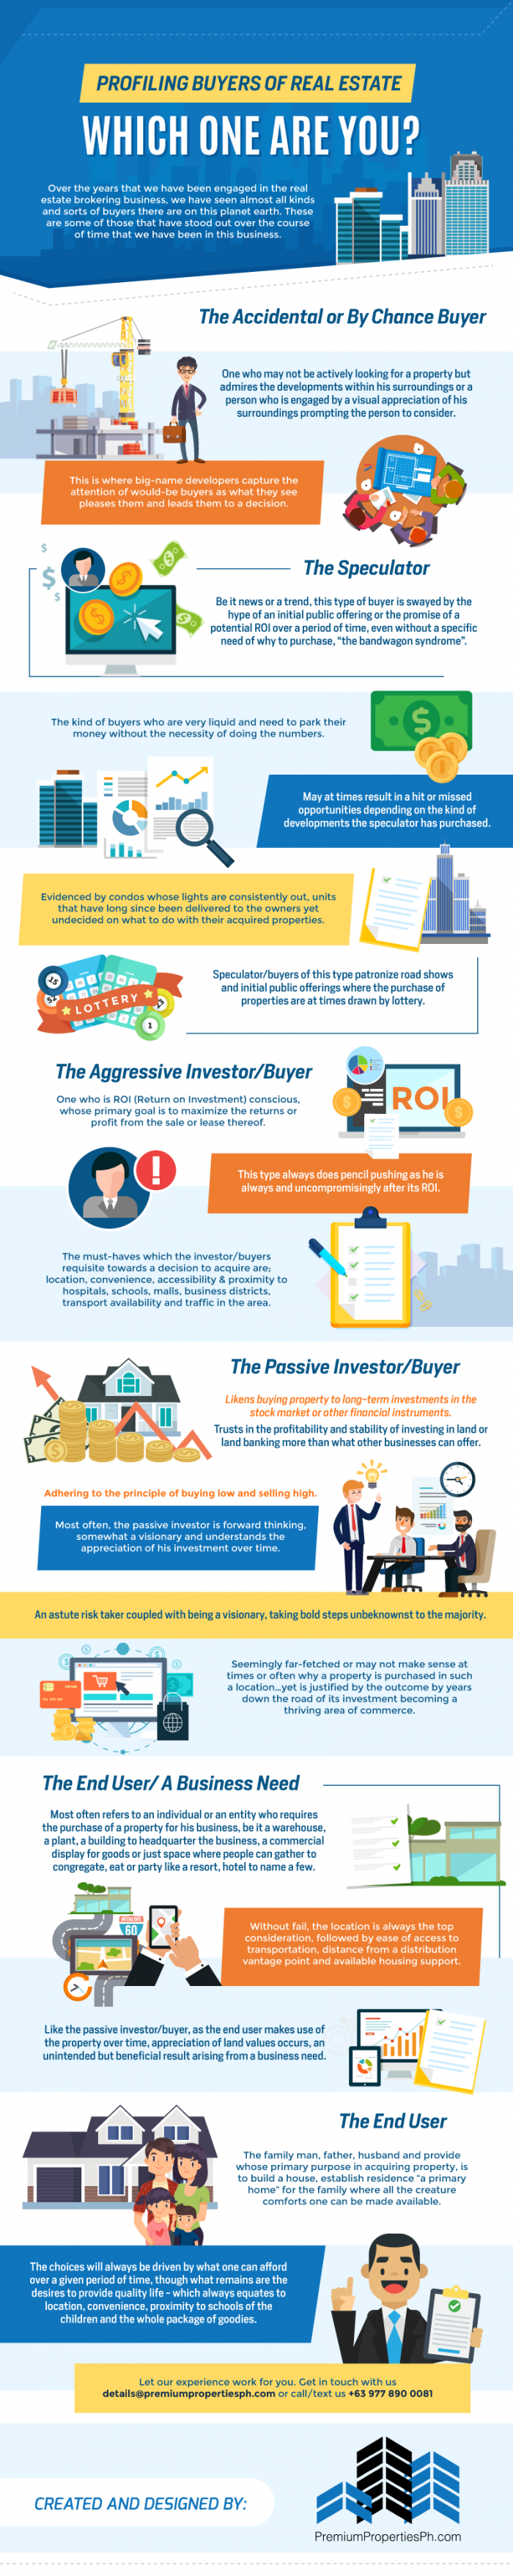 Profiling Buyers Of Real Estate: Which One Are You? #infographic